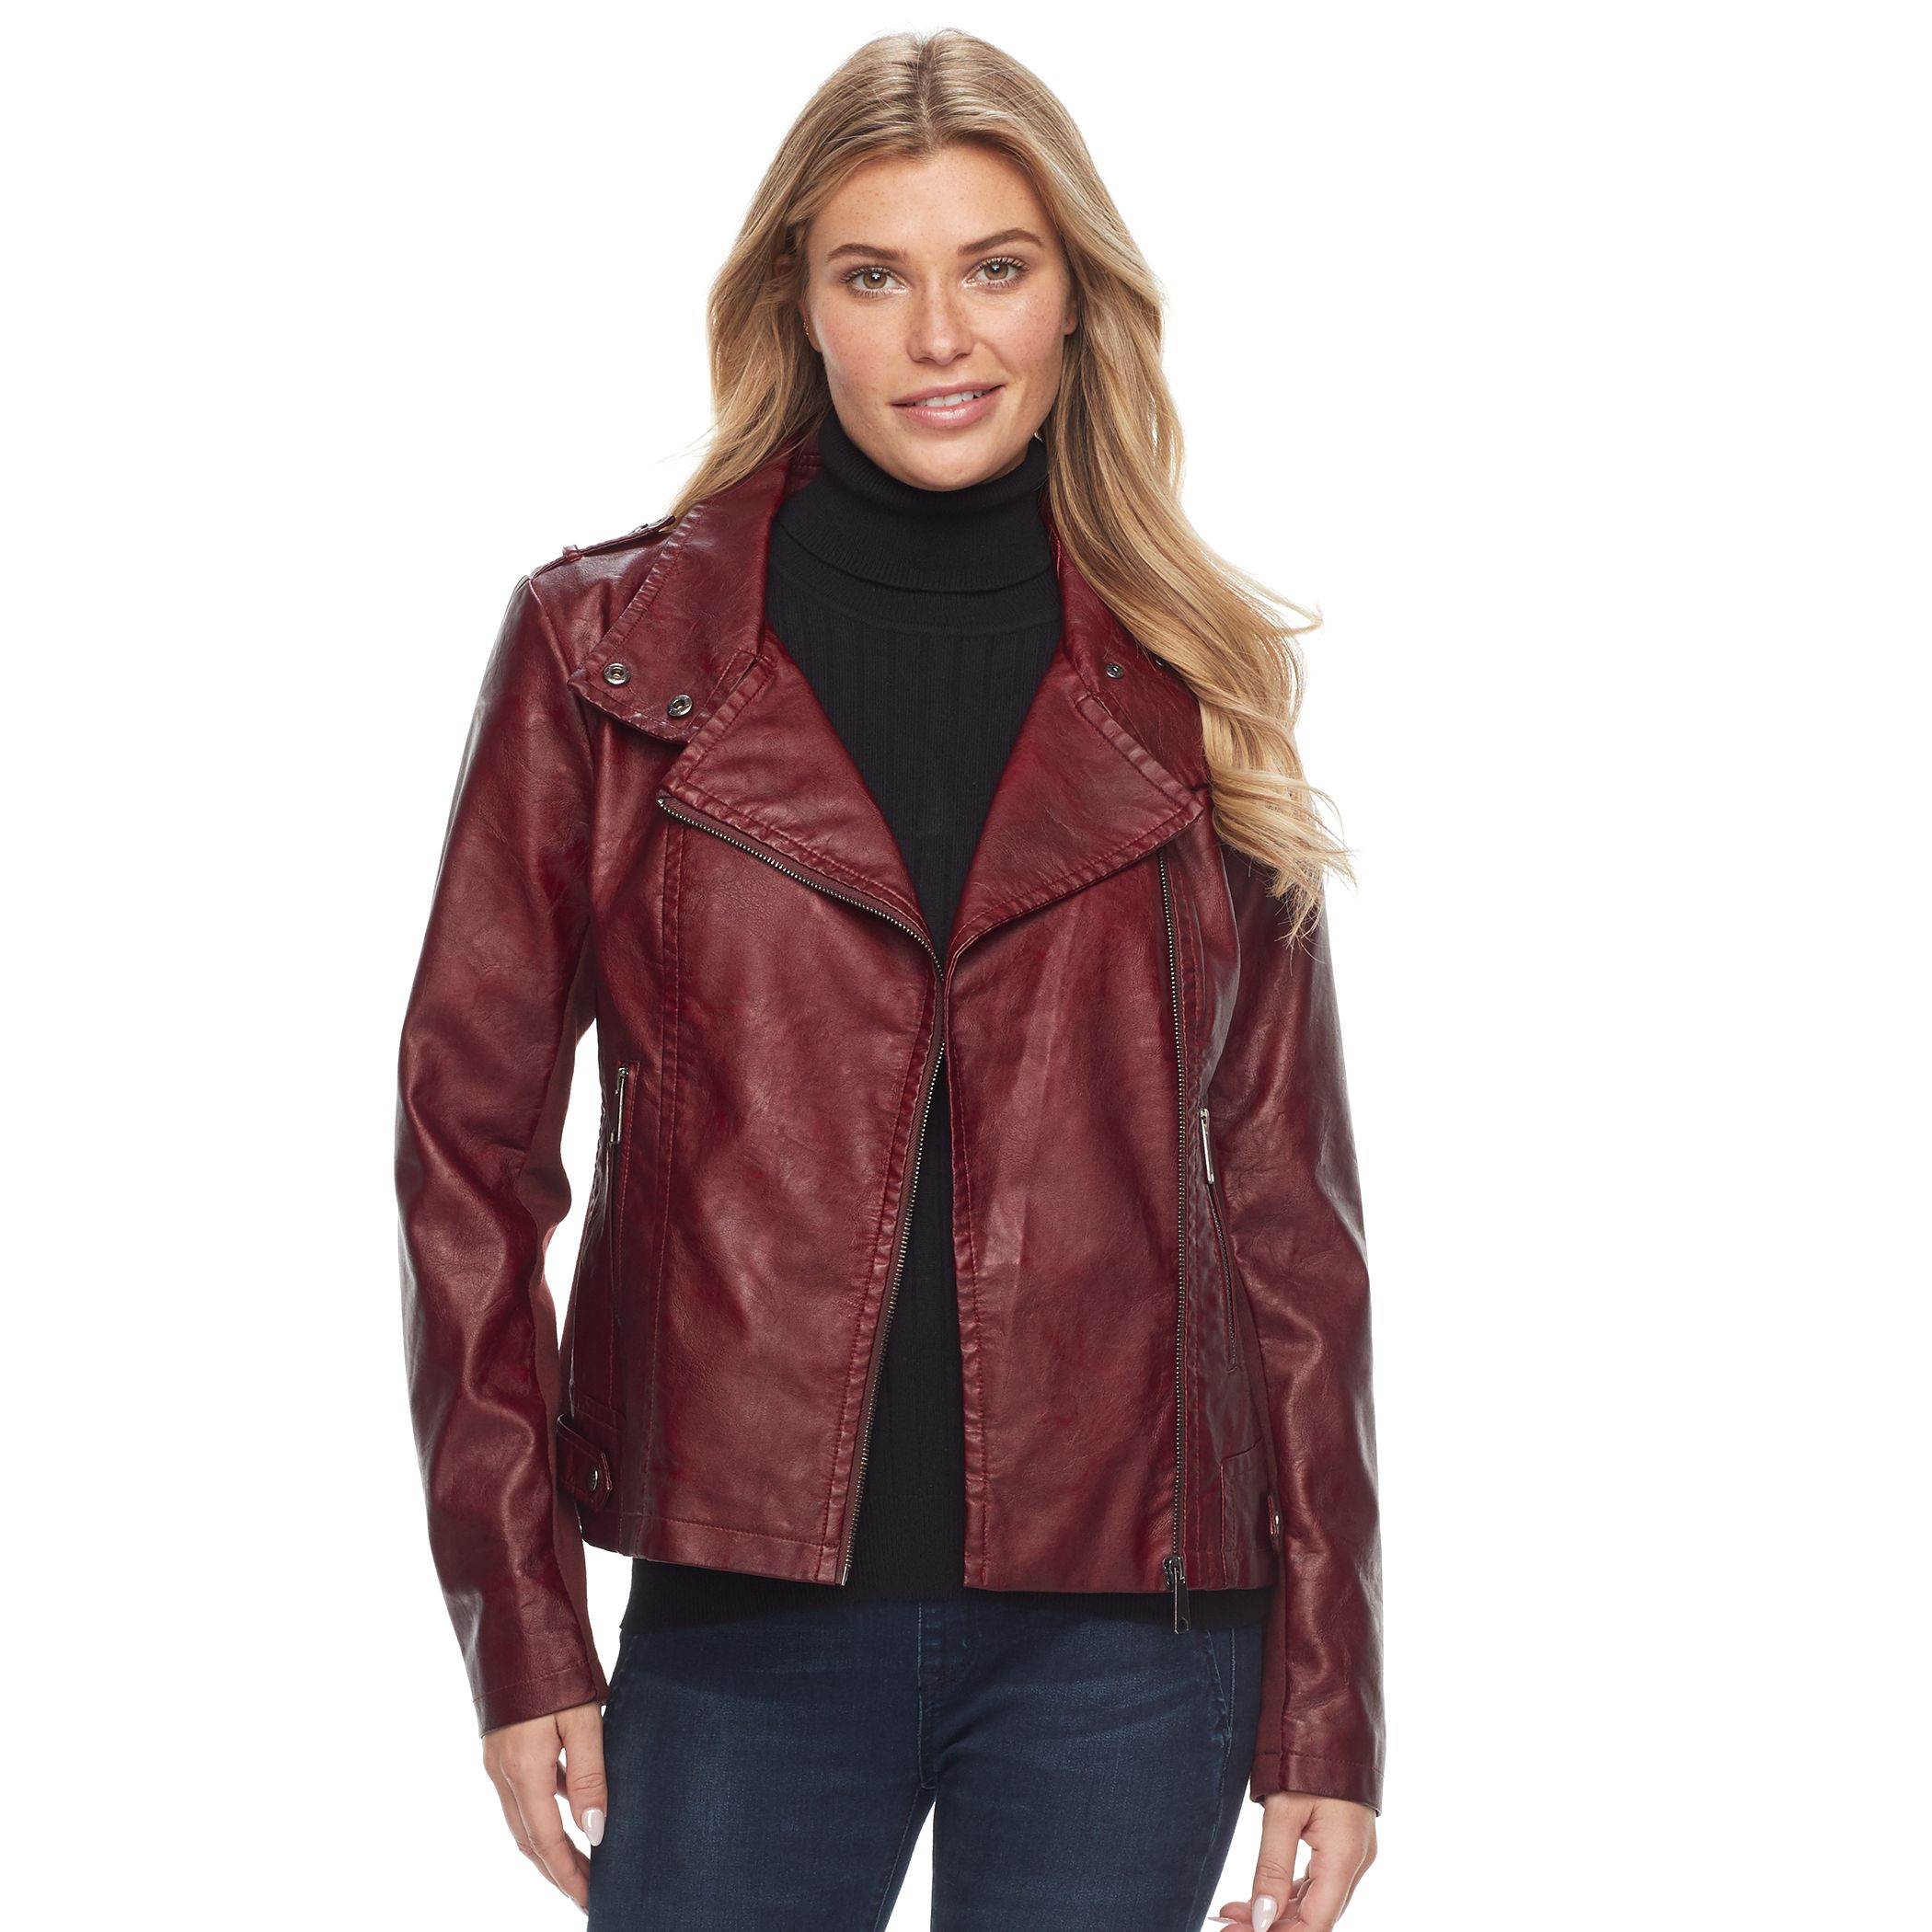 Leather jacket hoodie combo womens